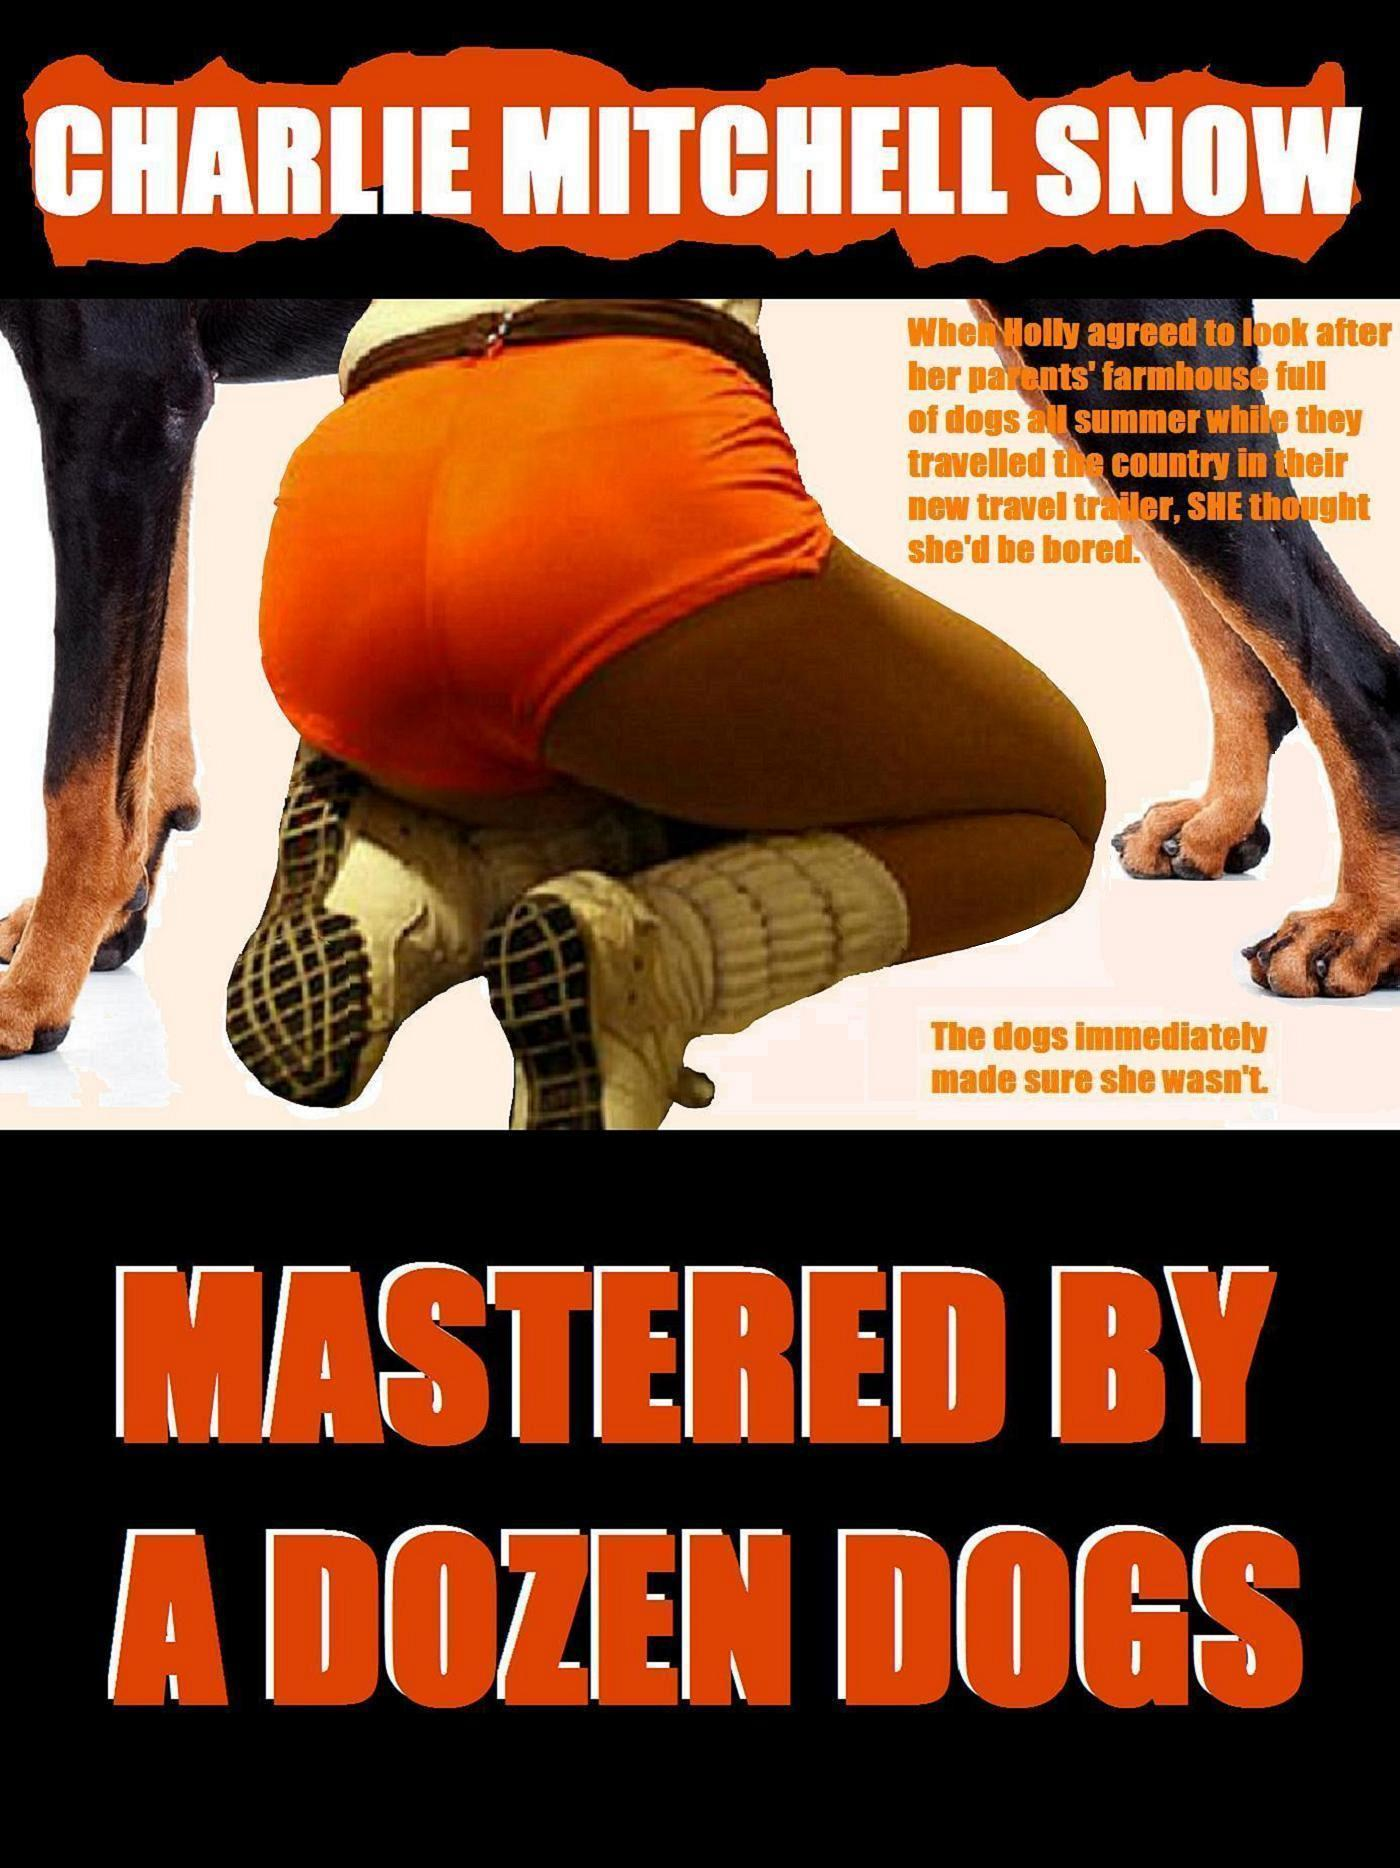 Mastered a Dozen Dogs by Charlie Mitchell Snow